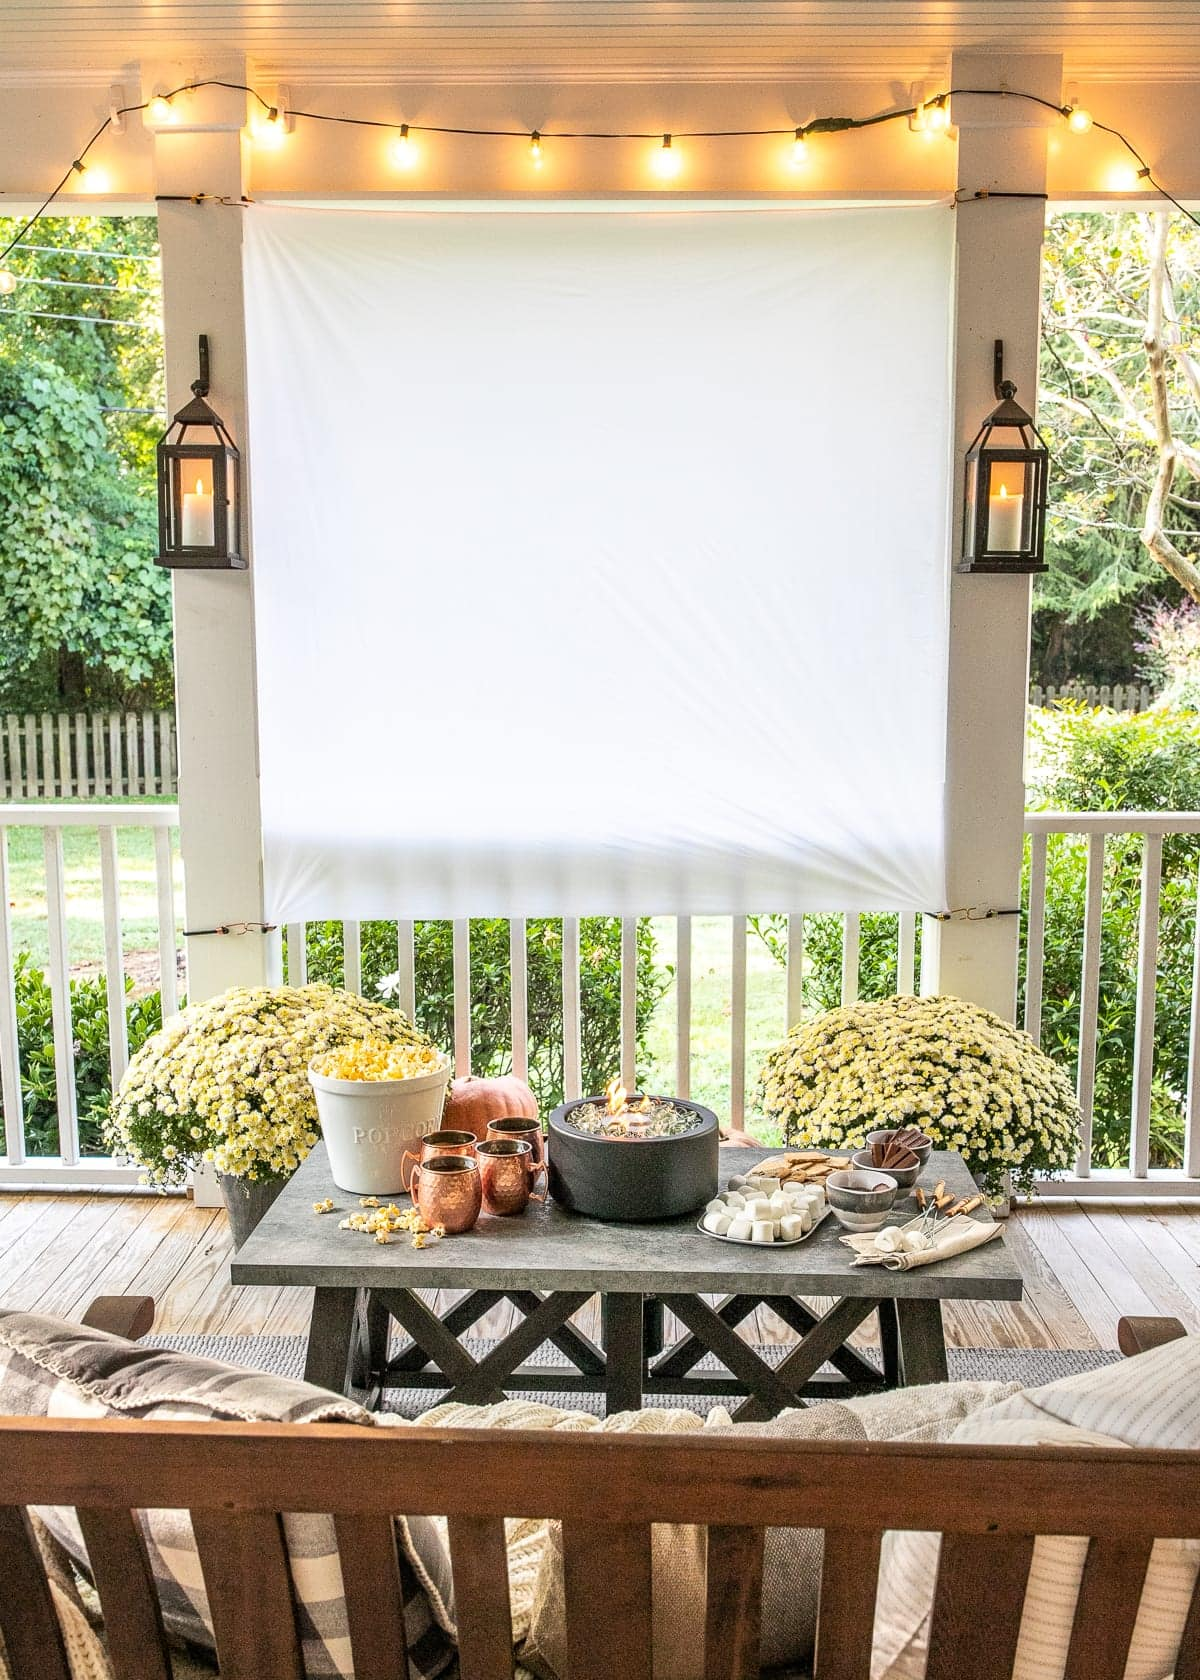 DIY Outdoor Movie Screen and DIY S'mores Table on Fall Back Porch